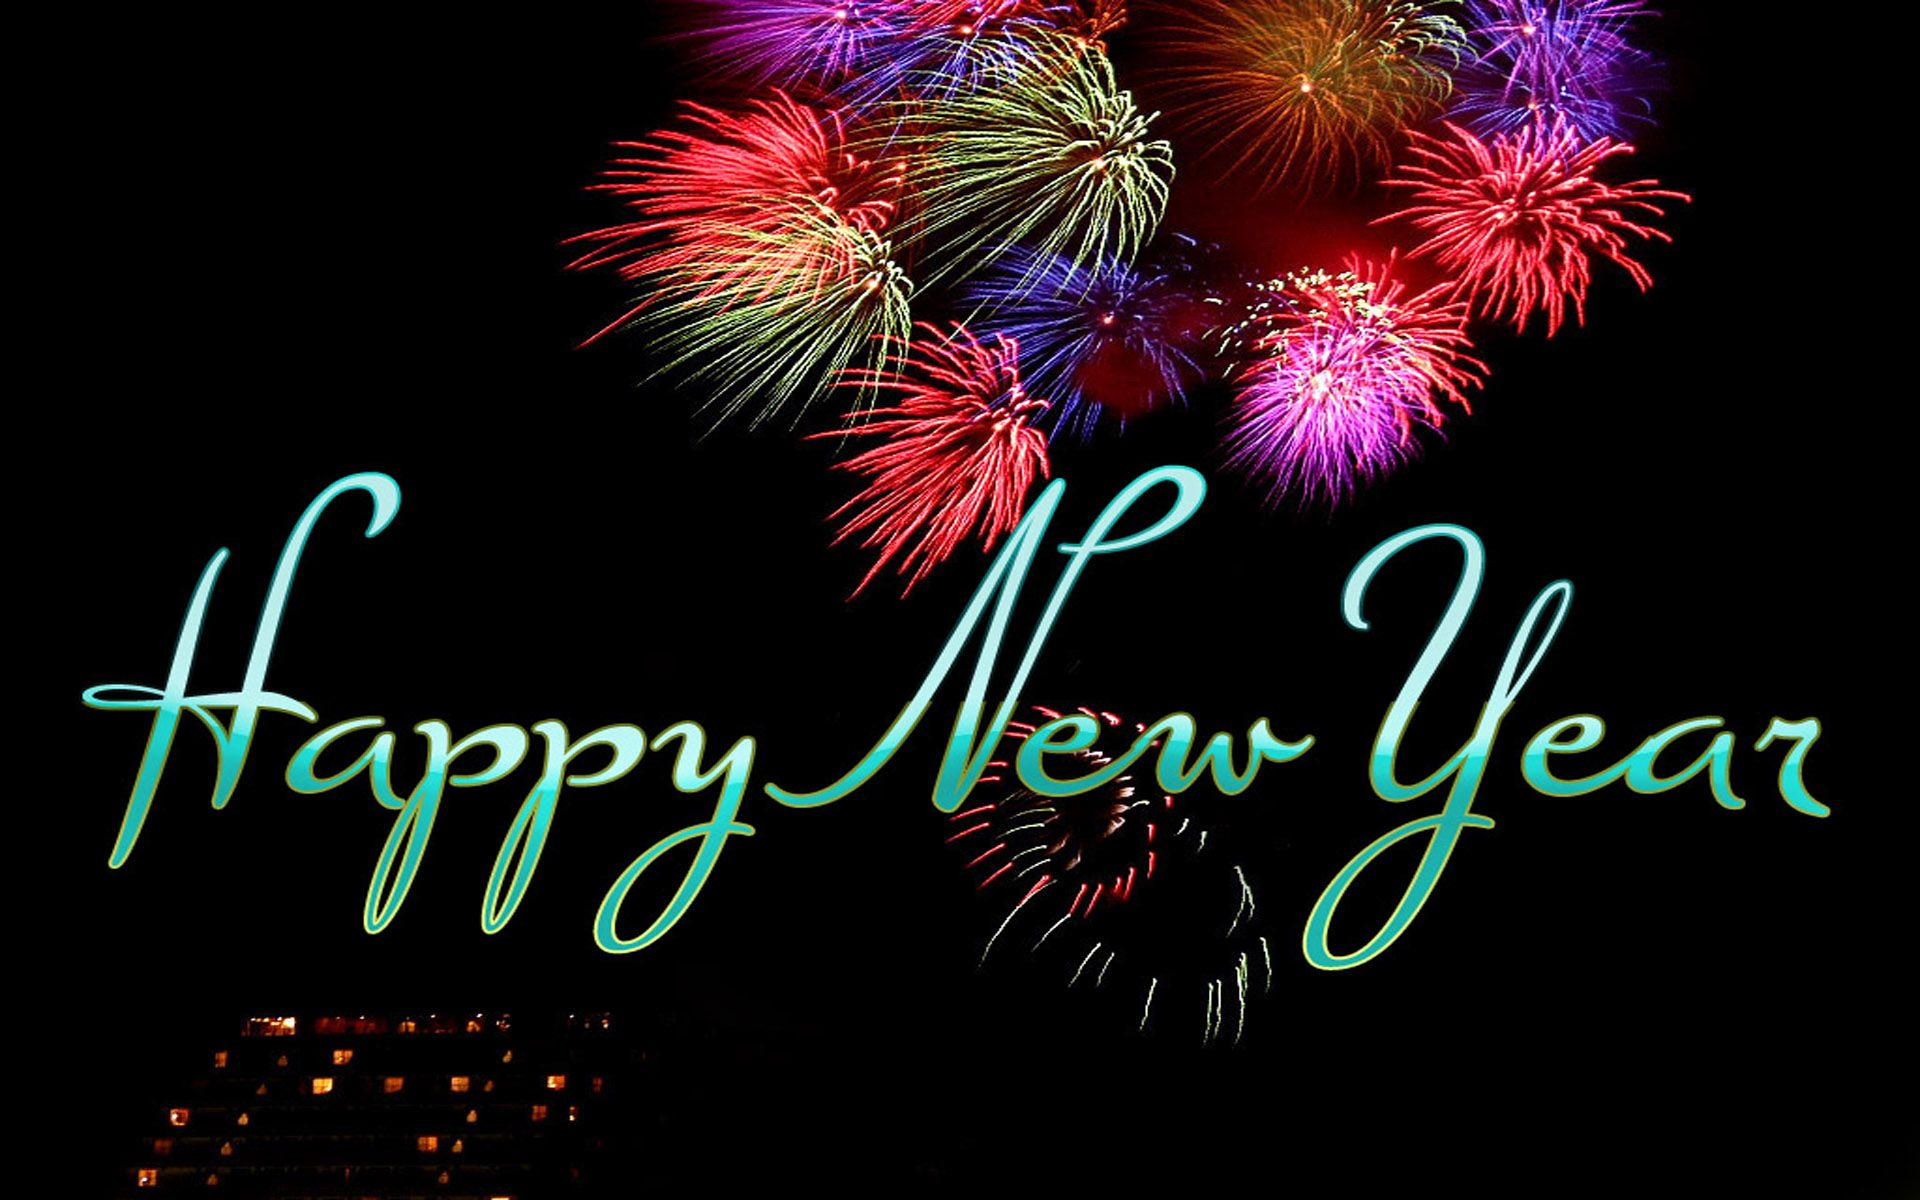 Happy New Year Wallpaper  Happy new year images, Happy new year